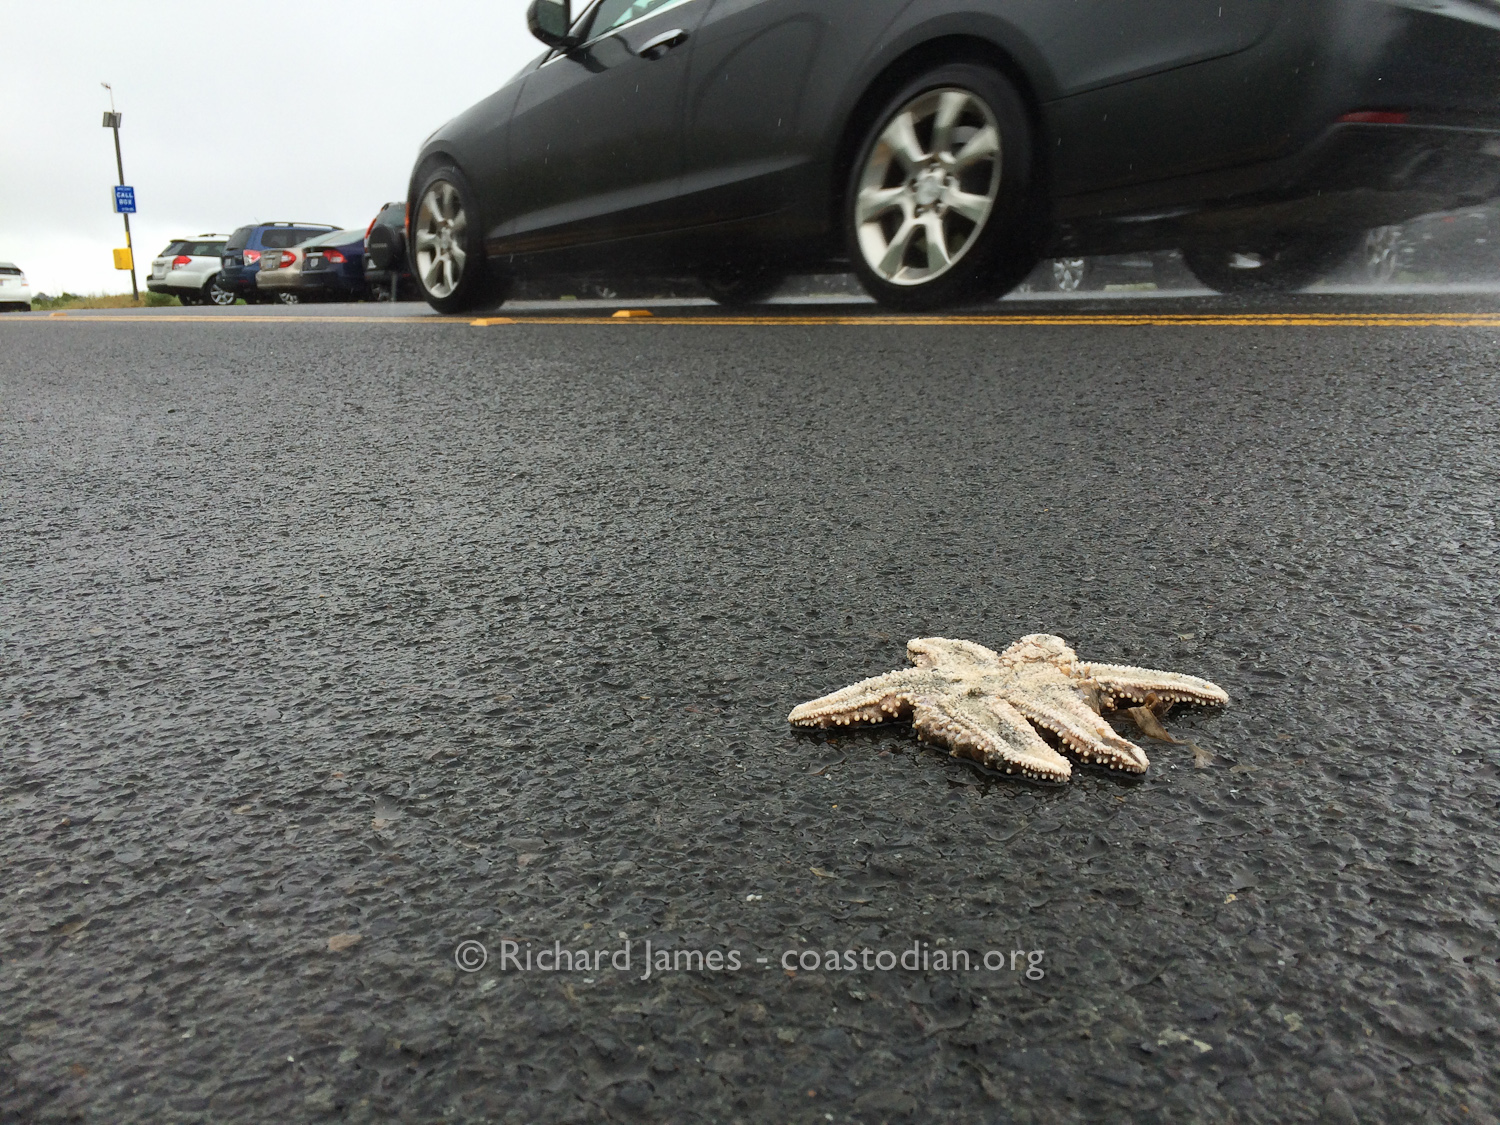 Dead Pisaster starfish tossed into the road. ©Richard James - coastodian.org